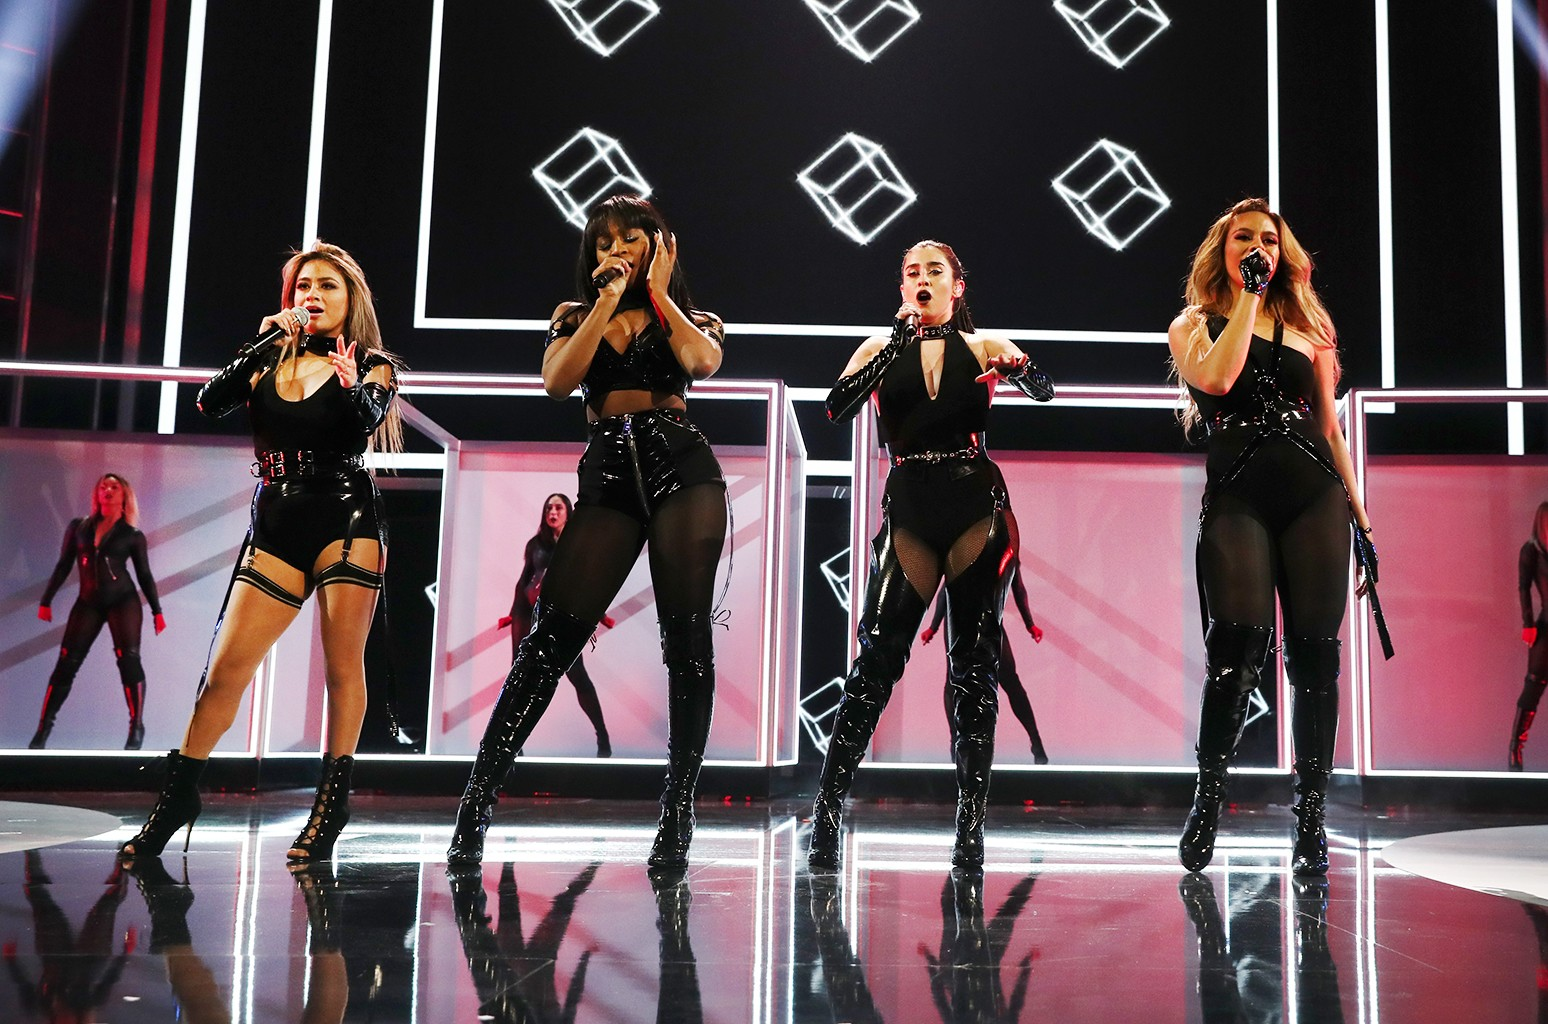 Ally Brooke, Normani Kordei, Lauren Jauregui, and Dinah Jane of Fifth Harmony